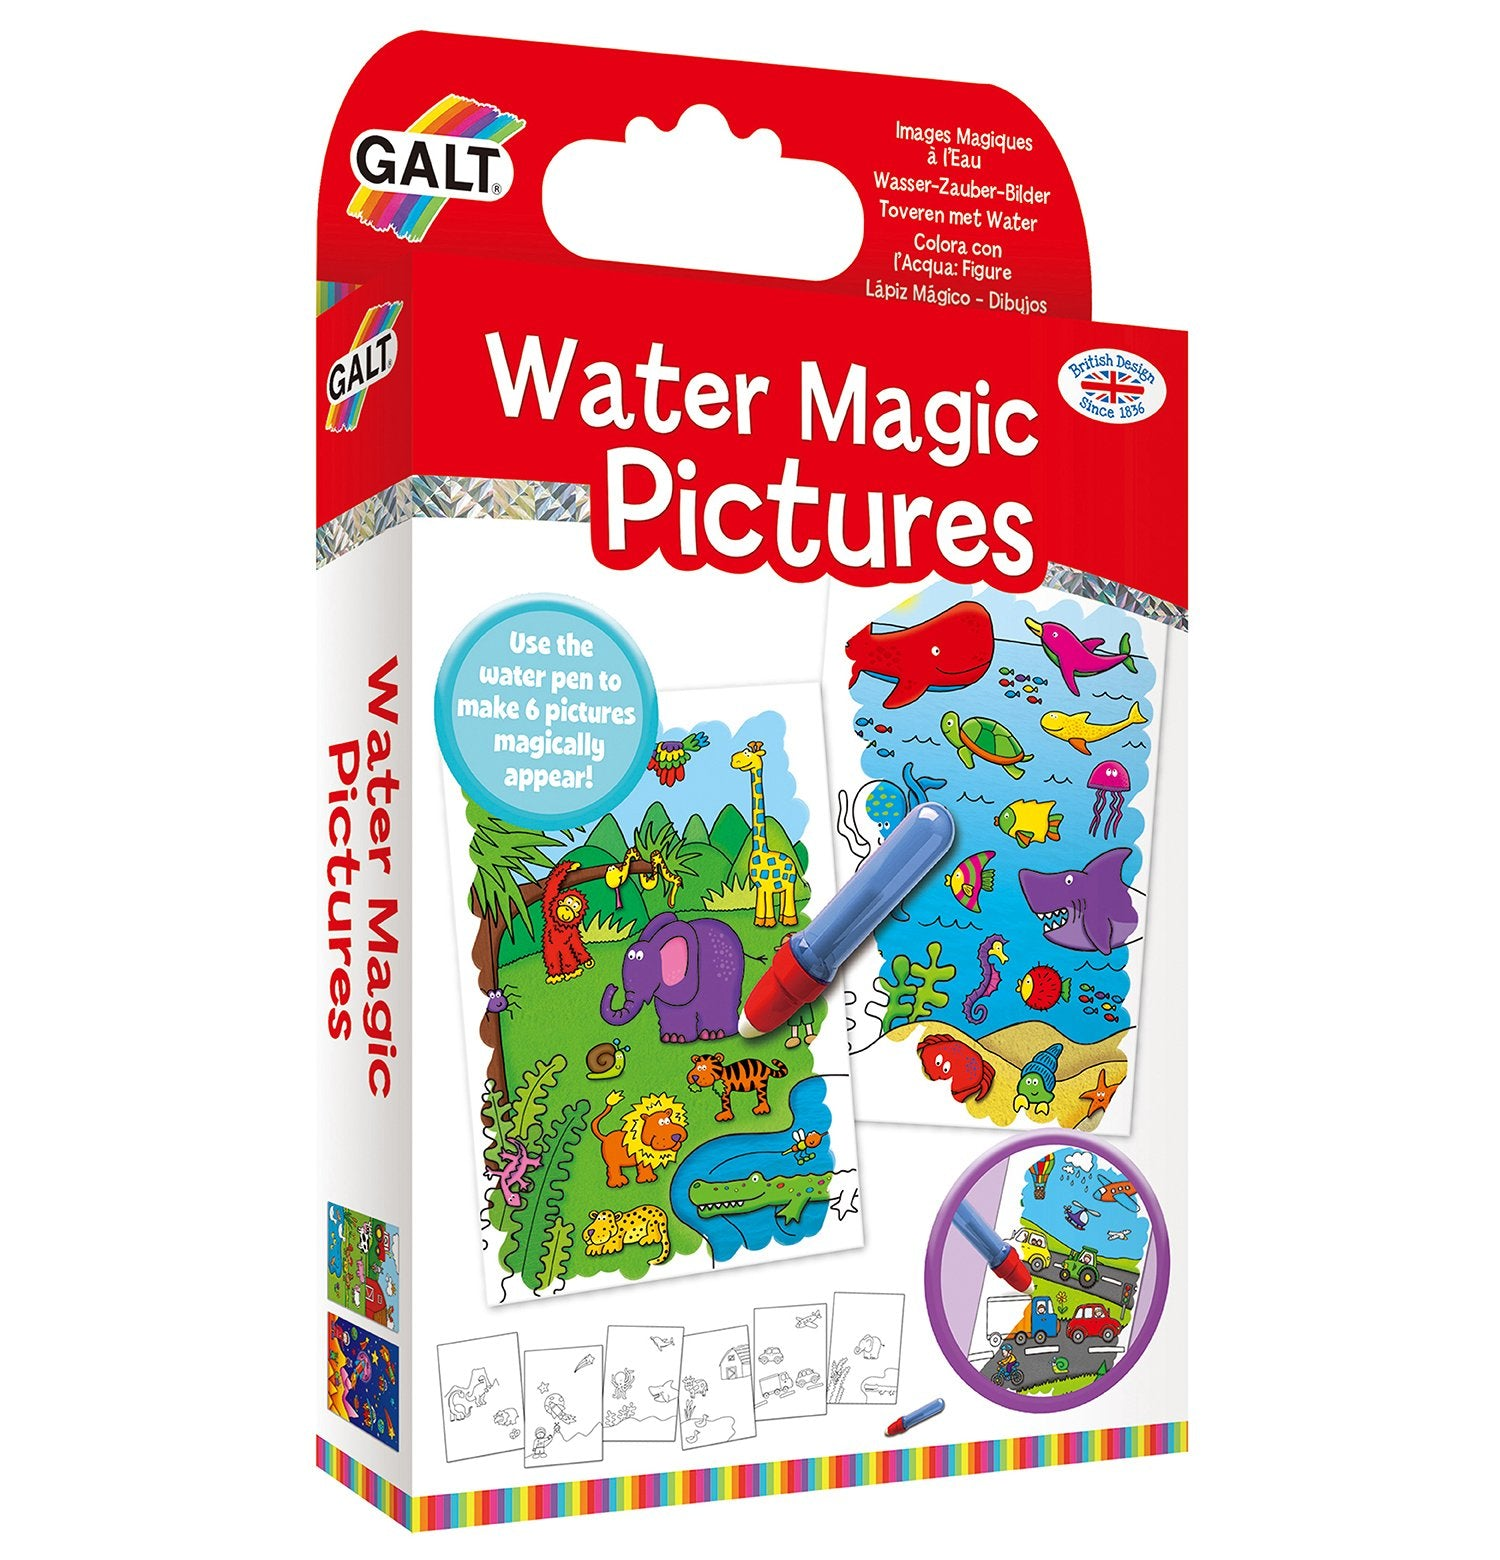 Water Magic Pictures - Galt